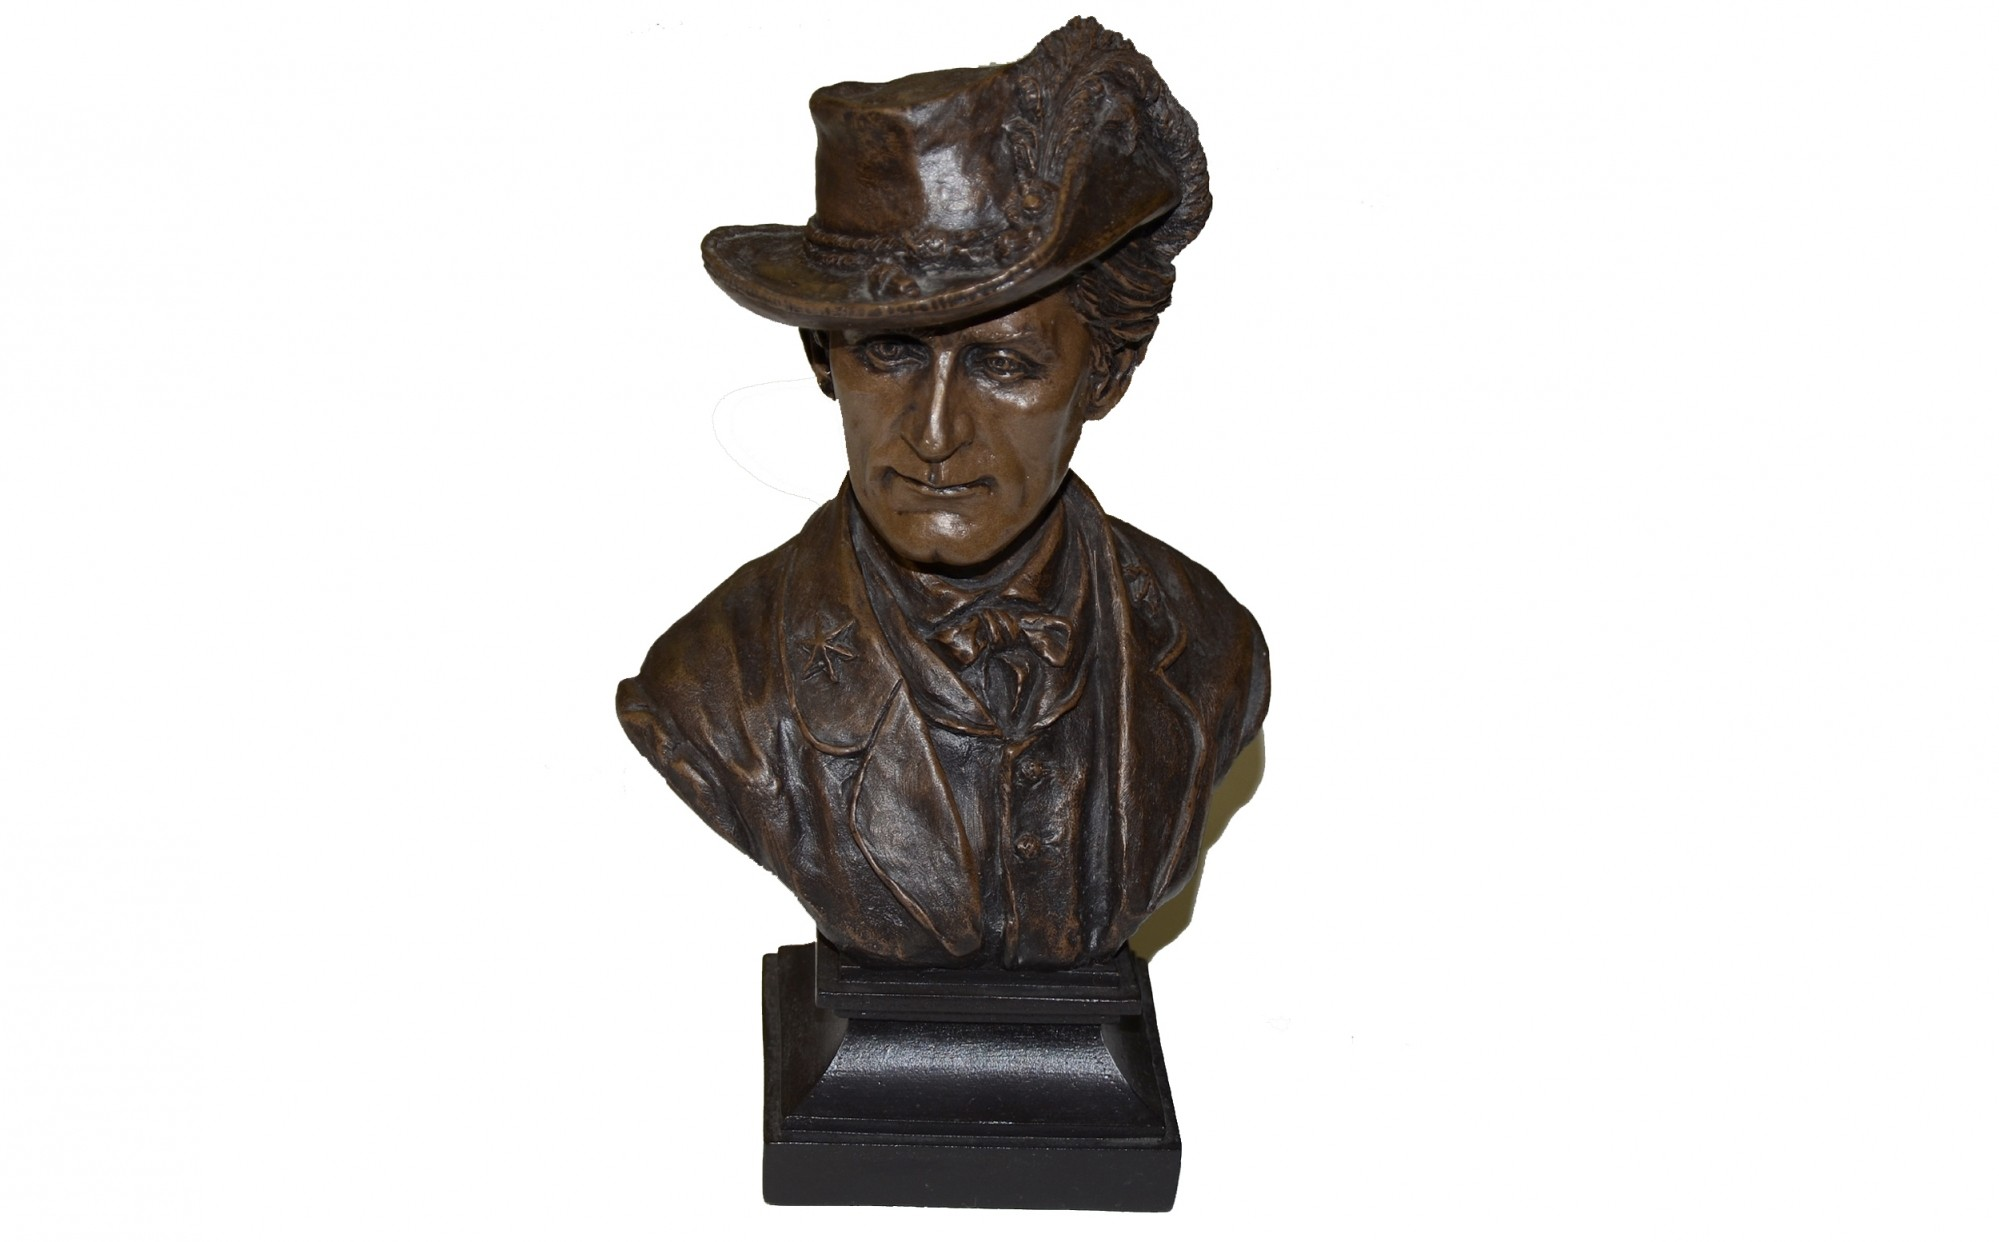 GENERAL JOHN SINGLETON MOSBY BUST BY RON TUNISON